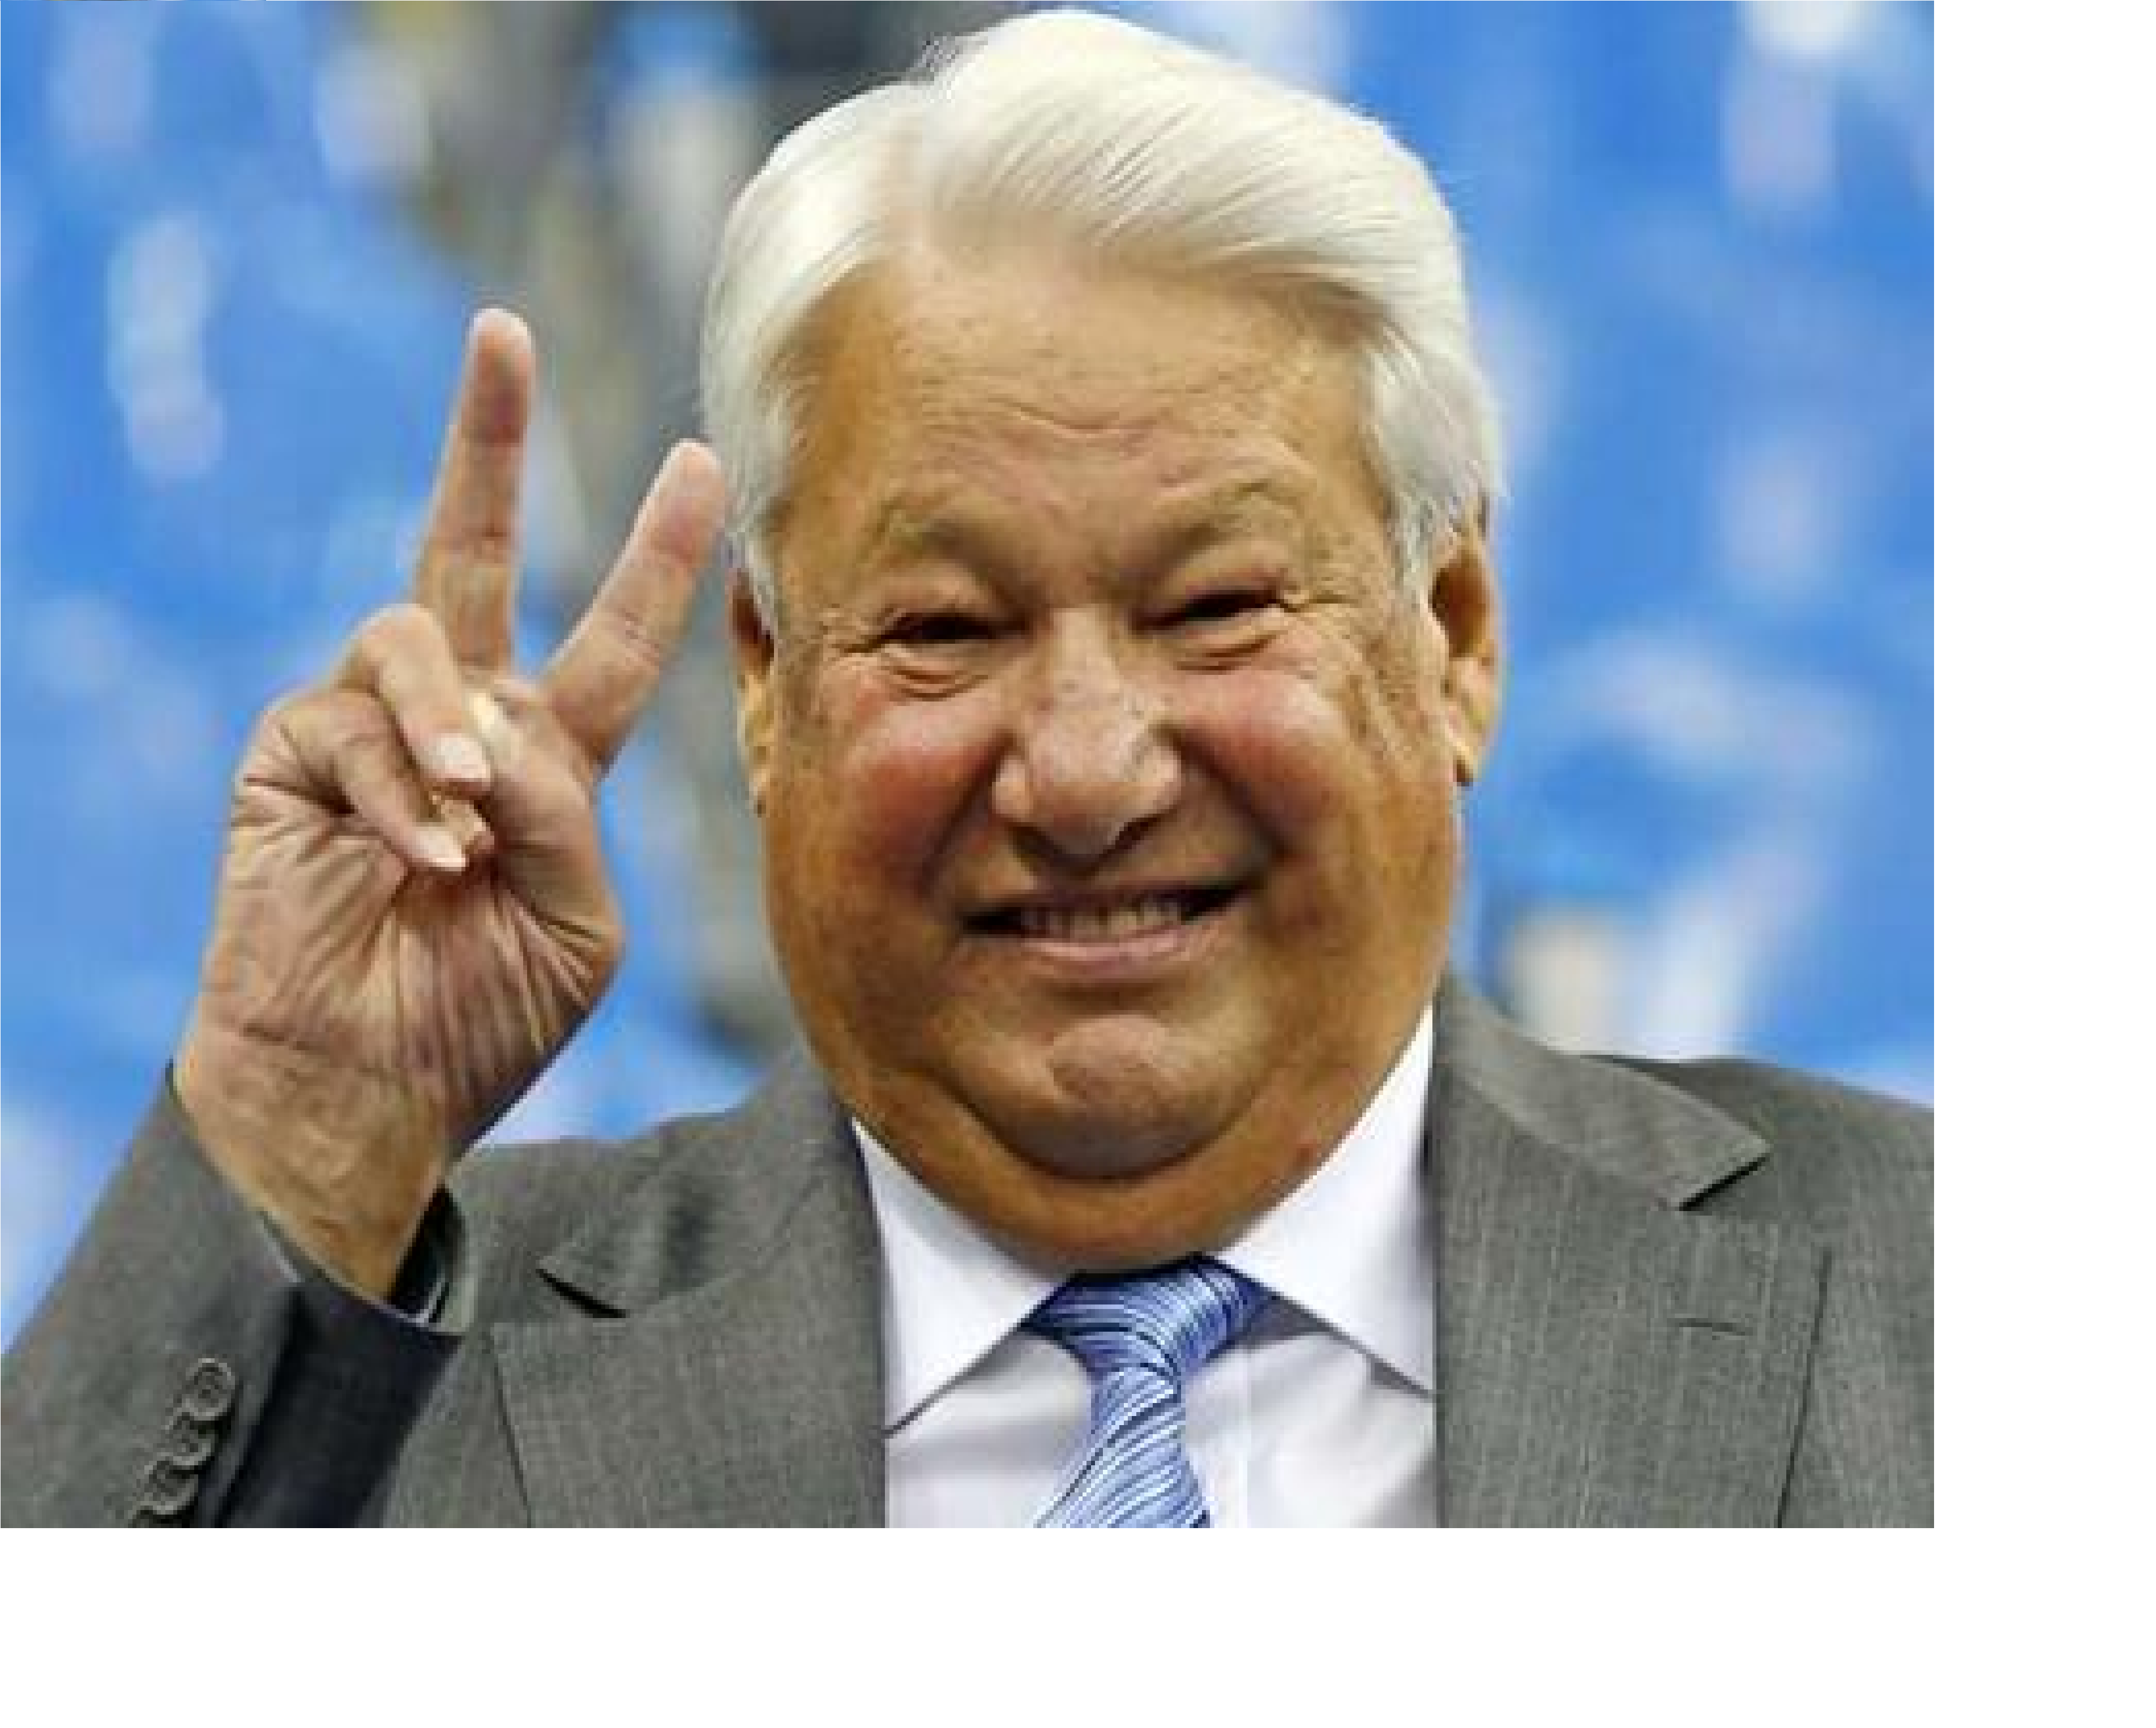 http://img1.wikia.nocookie.net/__cb20110725203507/althistory/images/e/e1/Boris_yeltsin.png